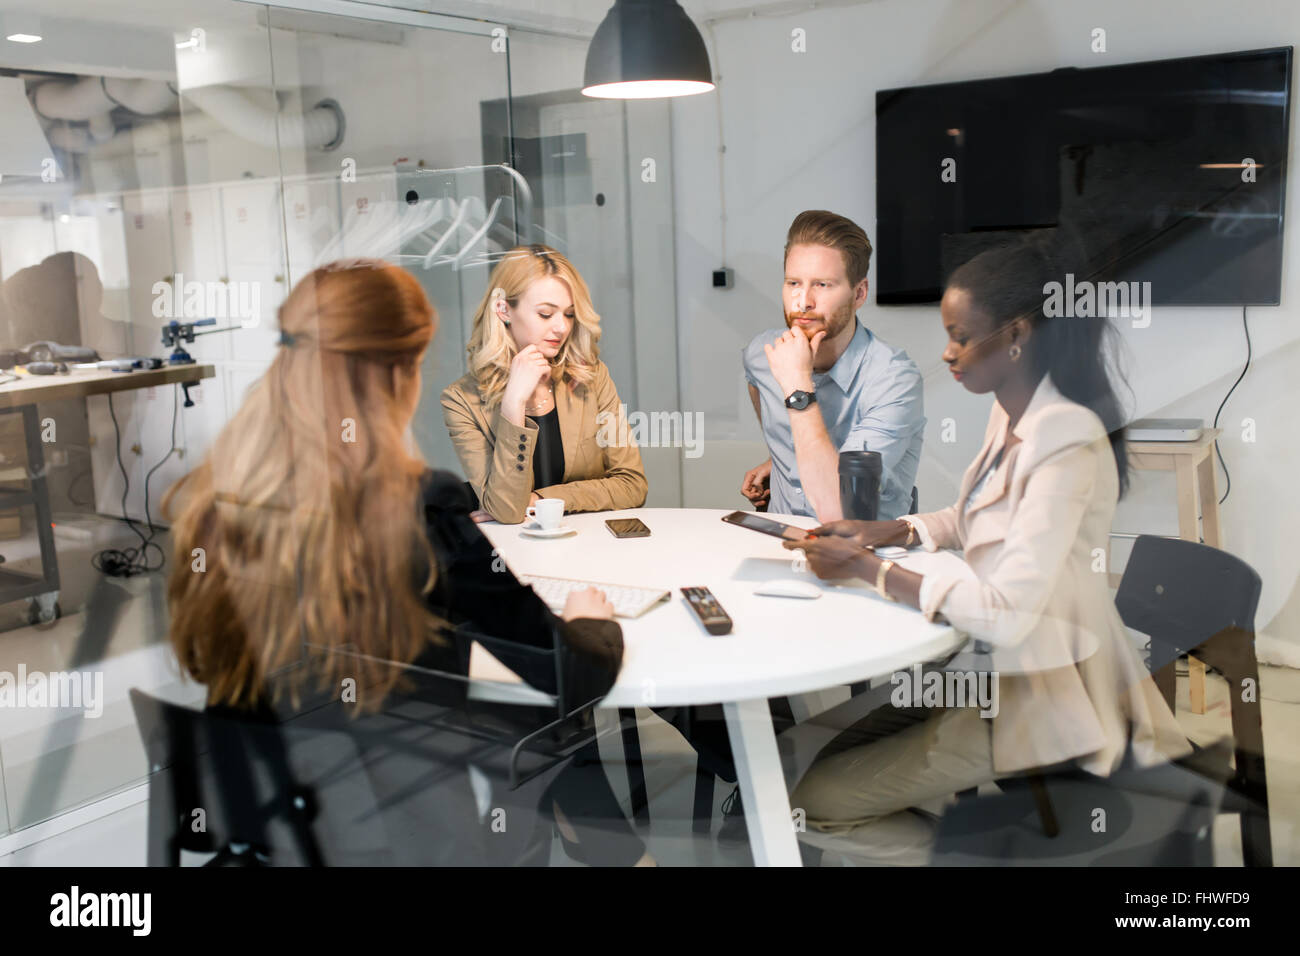 Business people board meeting in modern office while sitting at round table - Stock Image